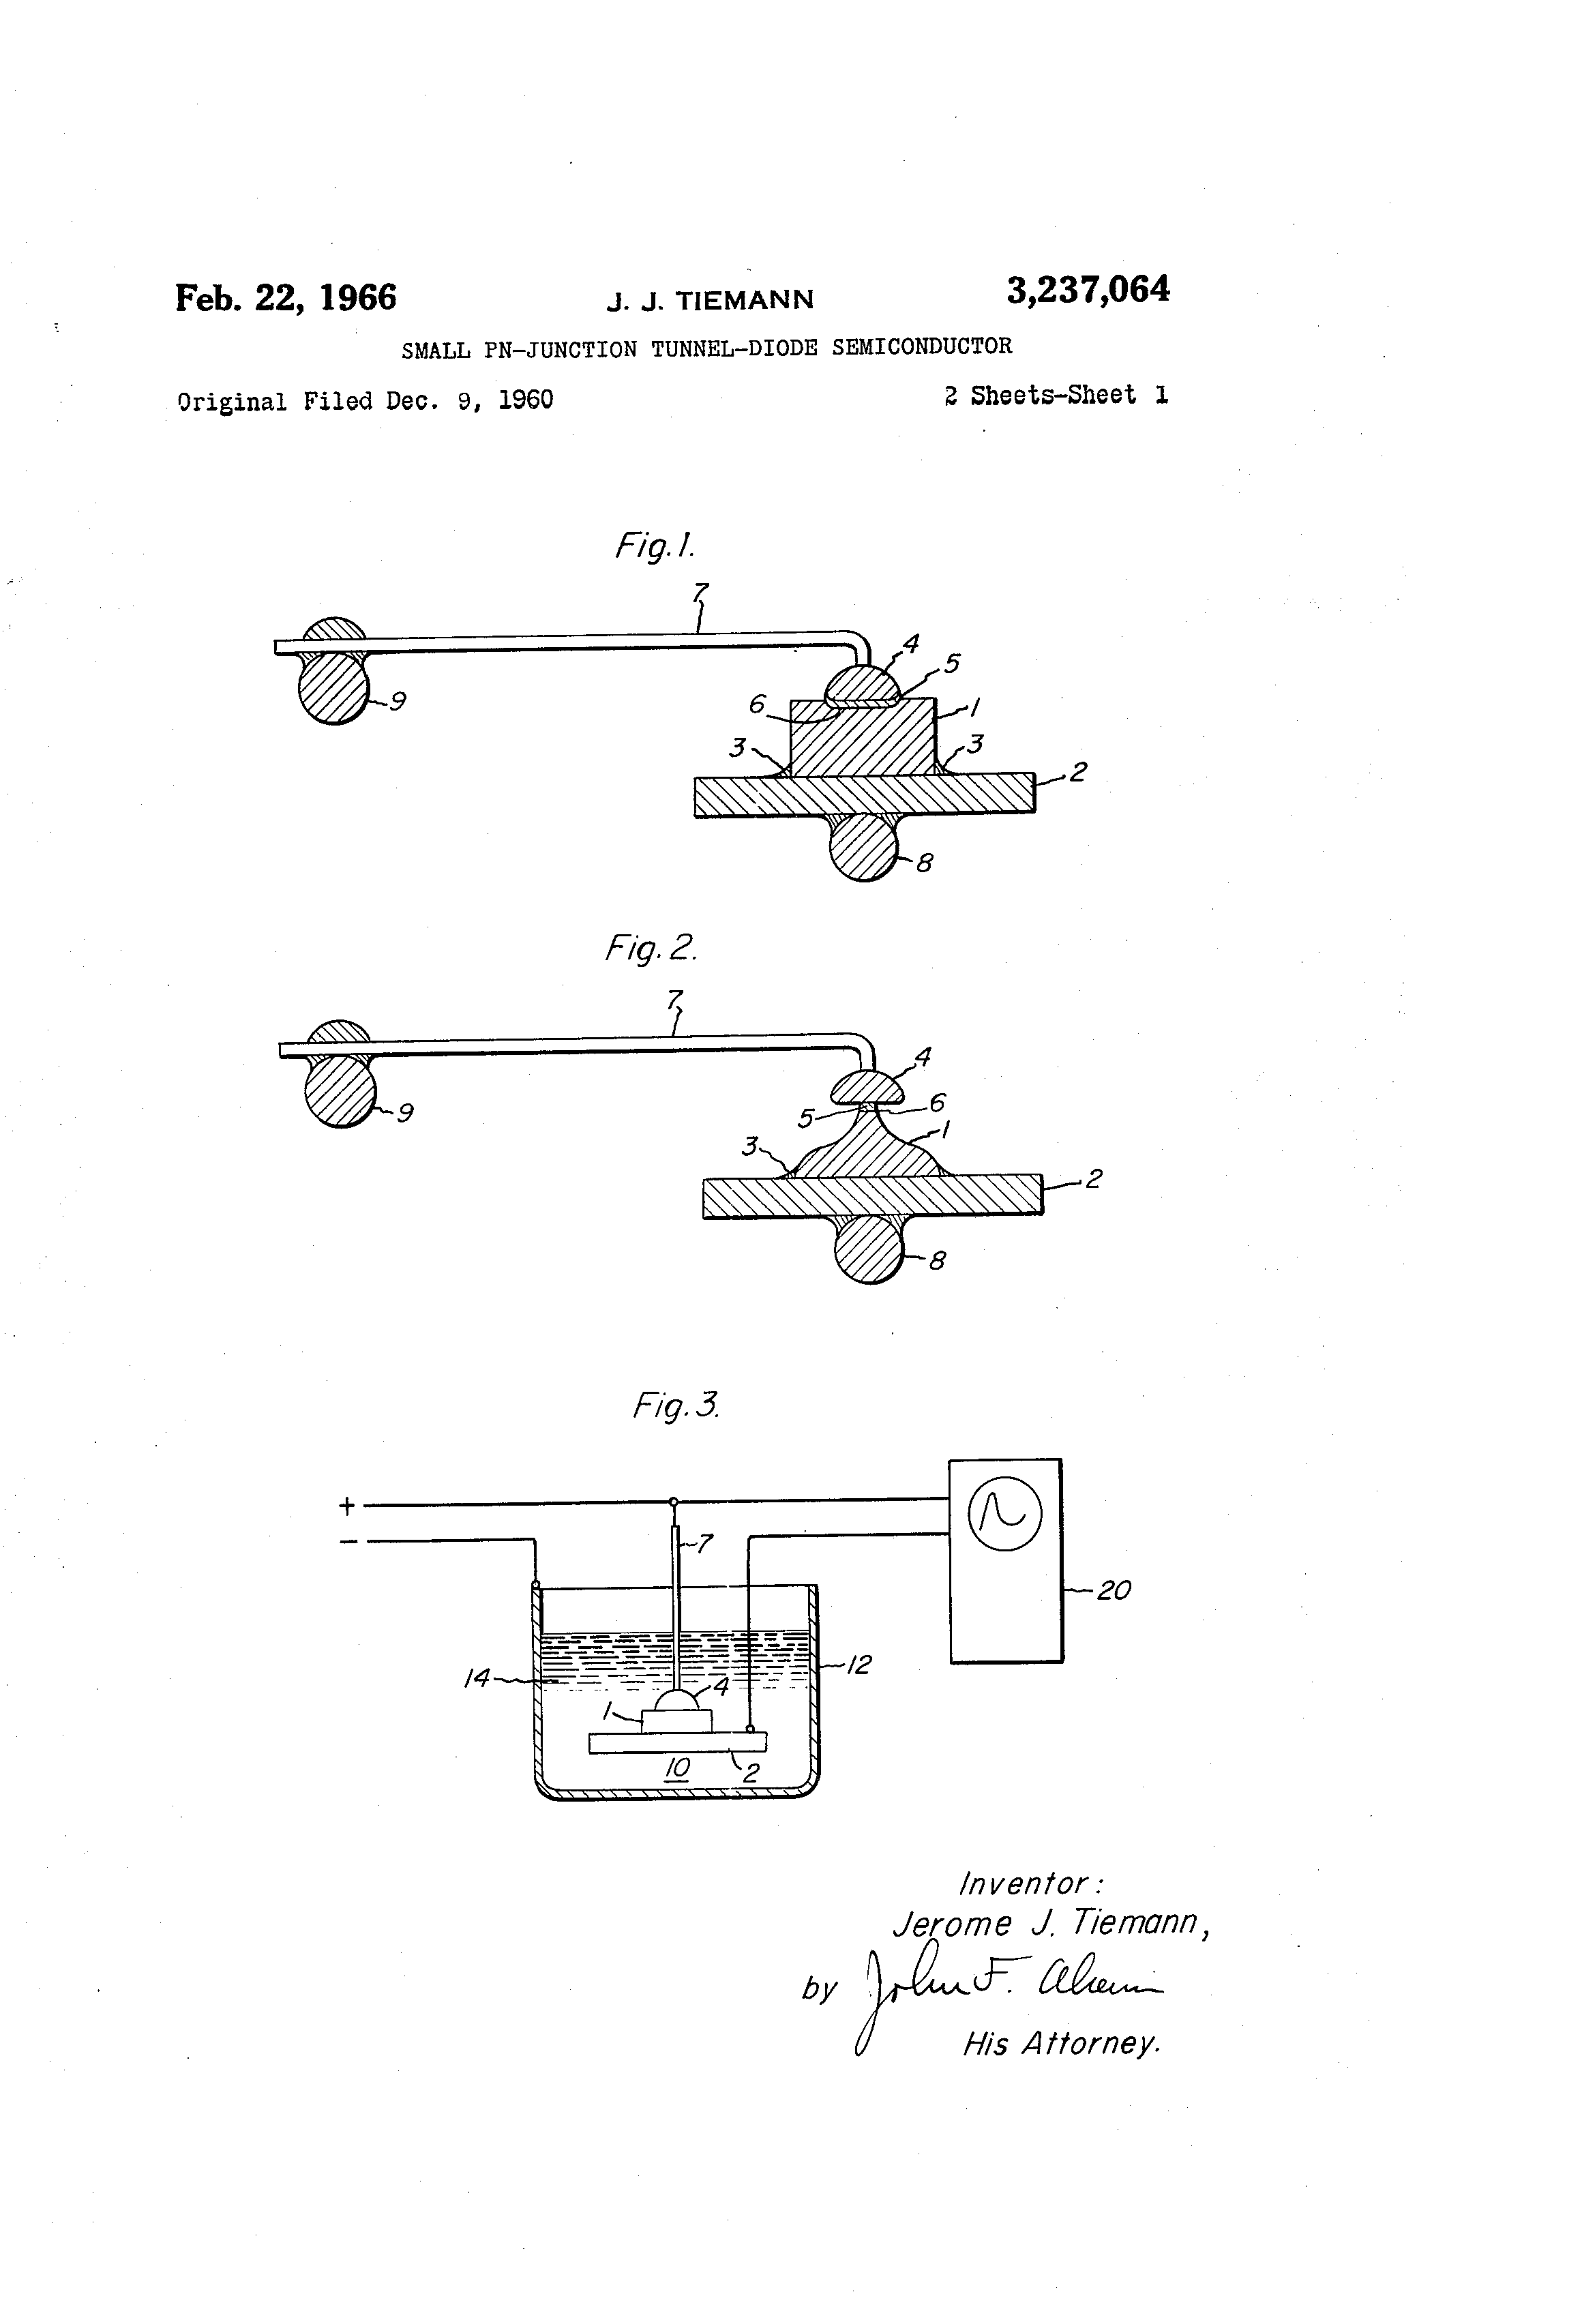 Brevet Us3237064 Small Pn Junction Tunnel Diode Semiconductor And Its Characteristics Patent Drawing